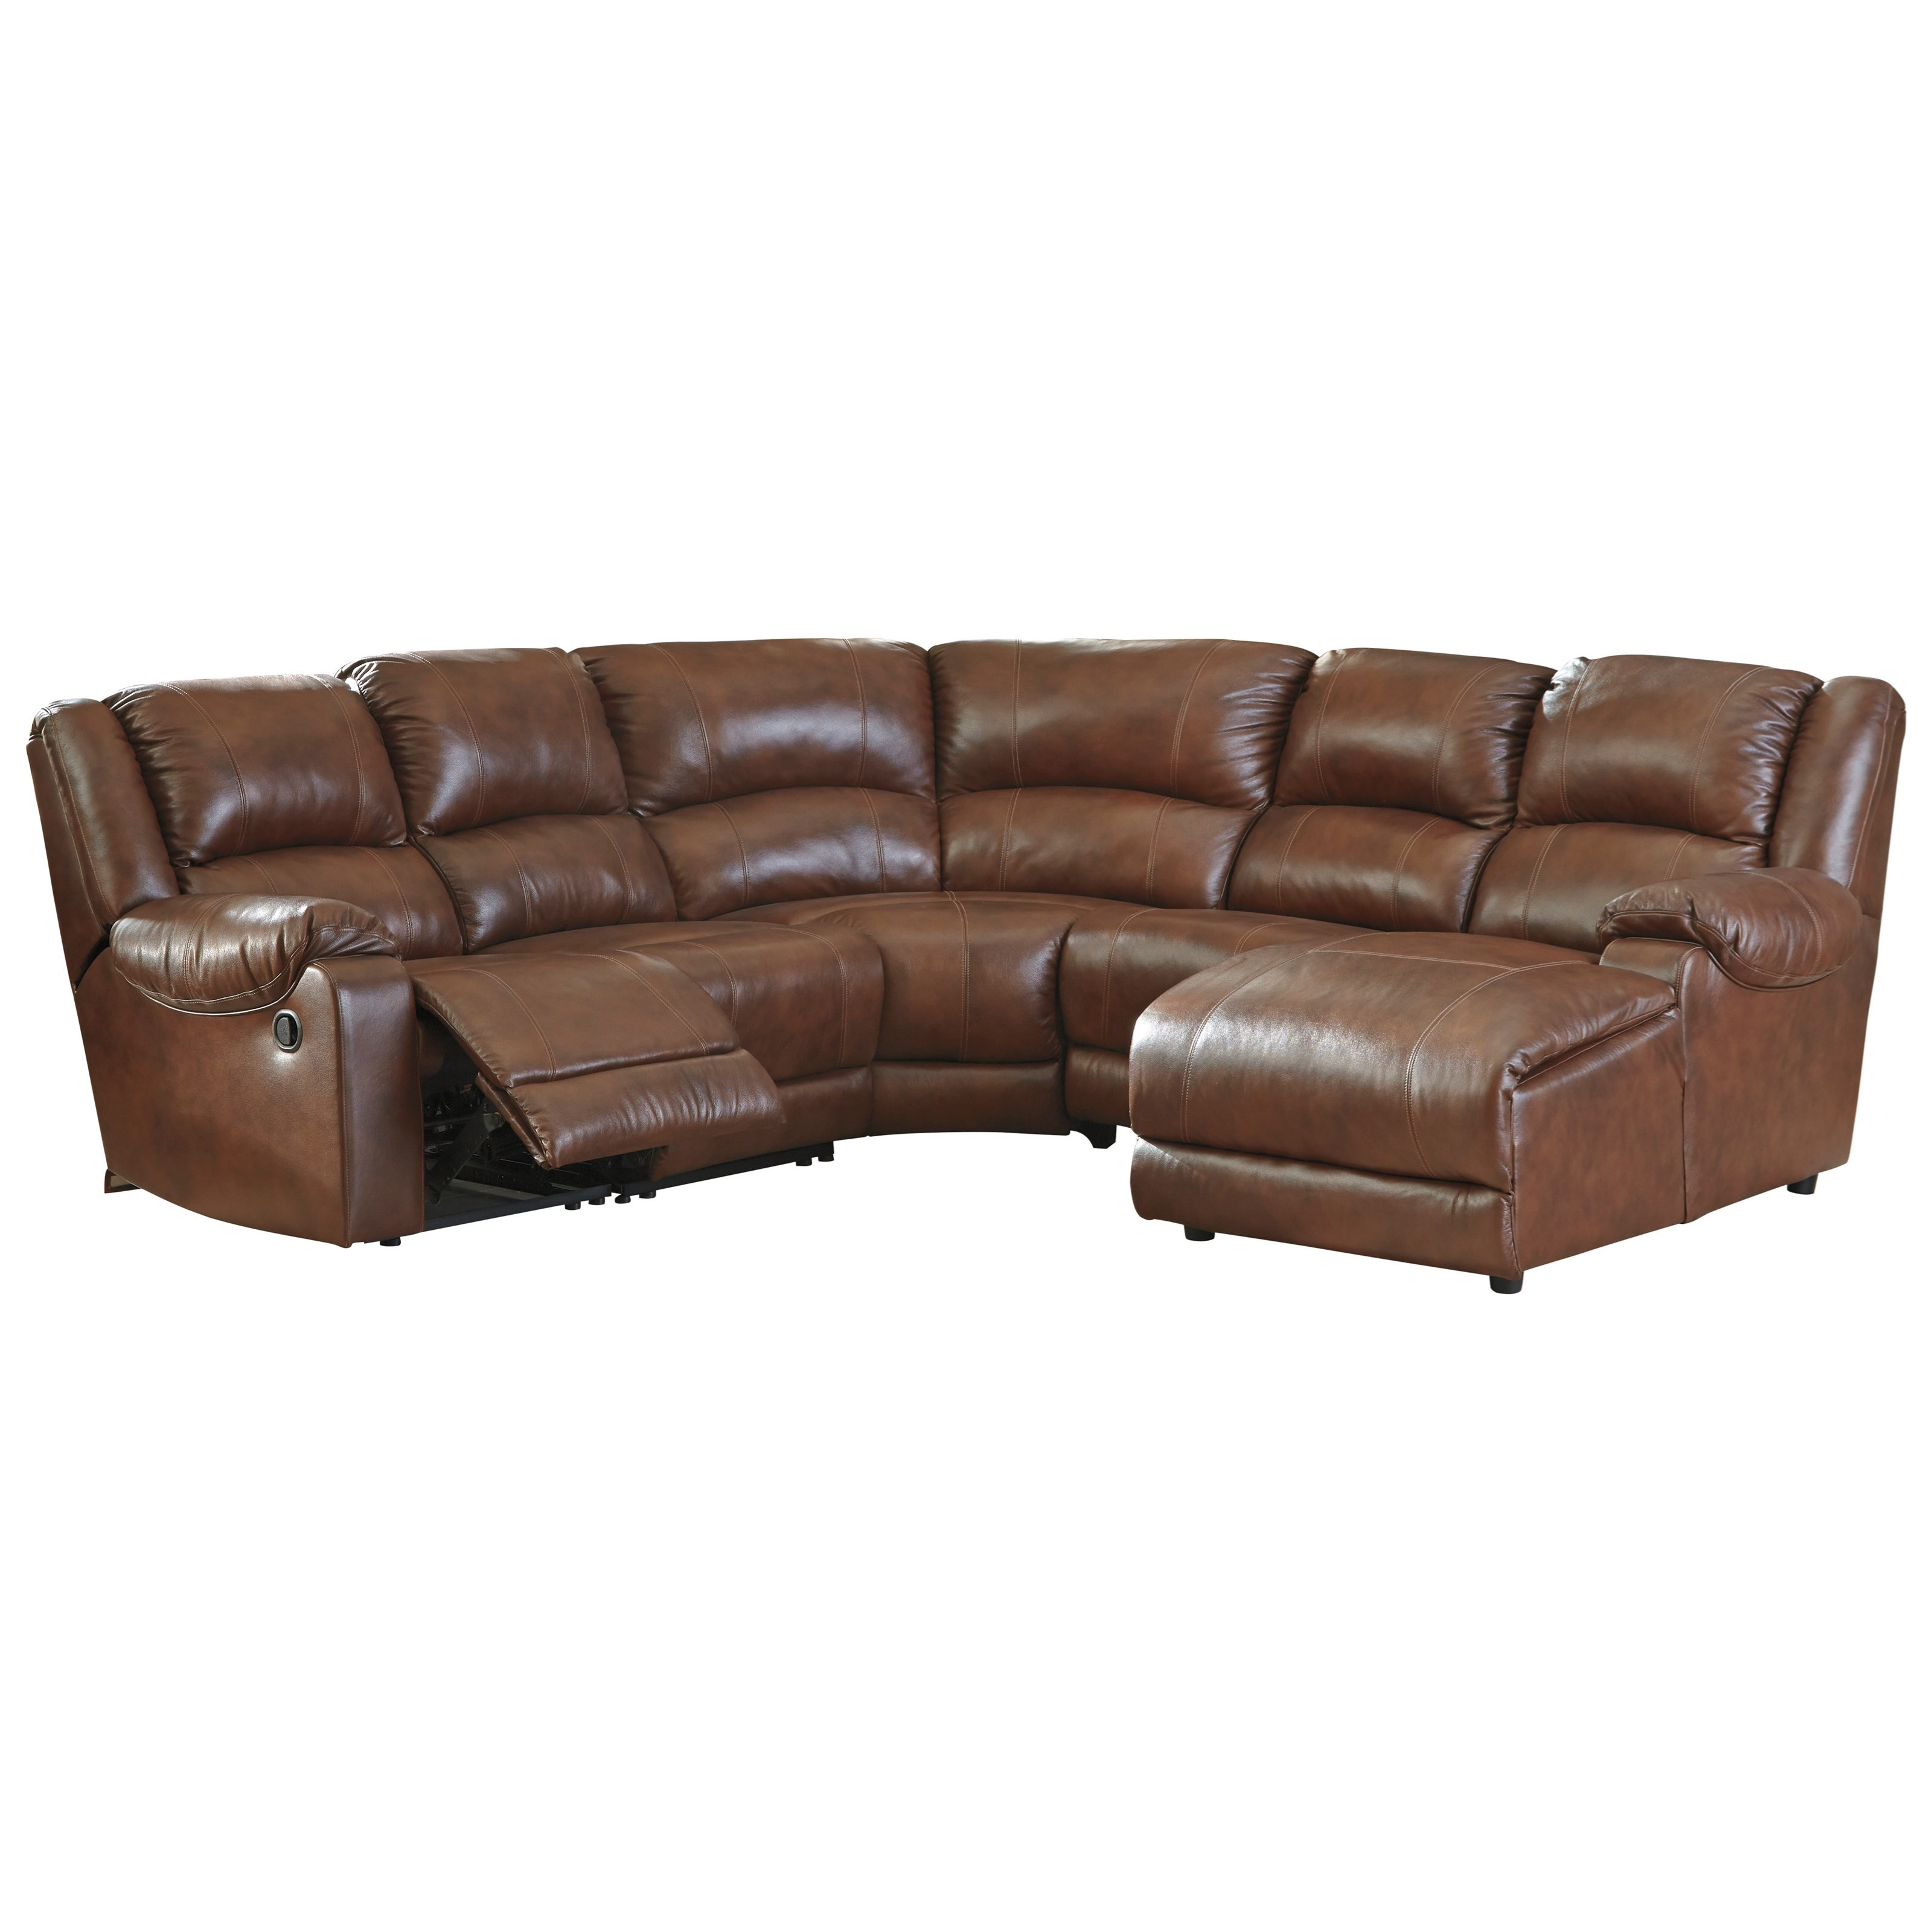 Signature design by ashley billwedge leather match - Leather reclining sectional with chaise ...